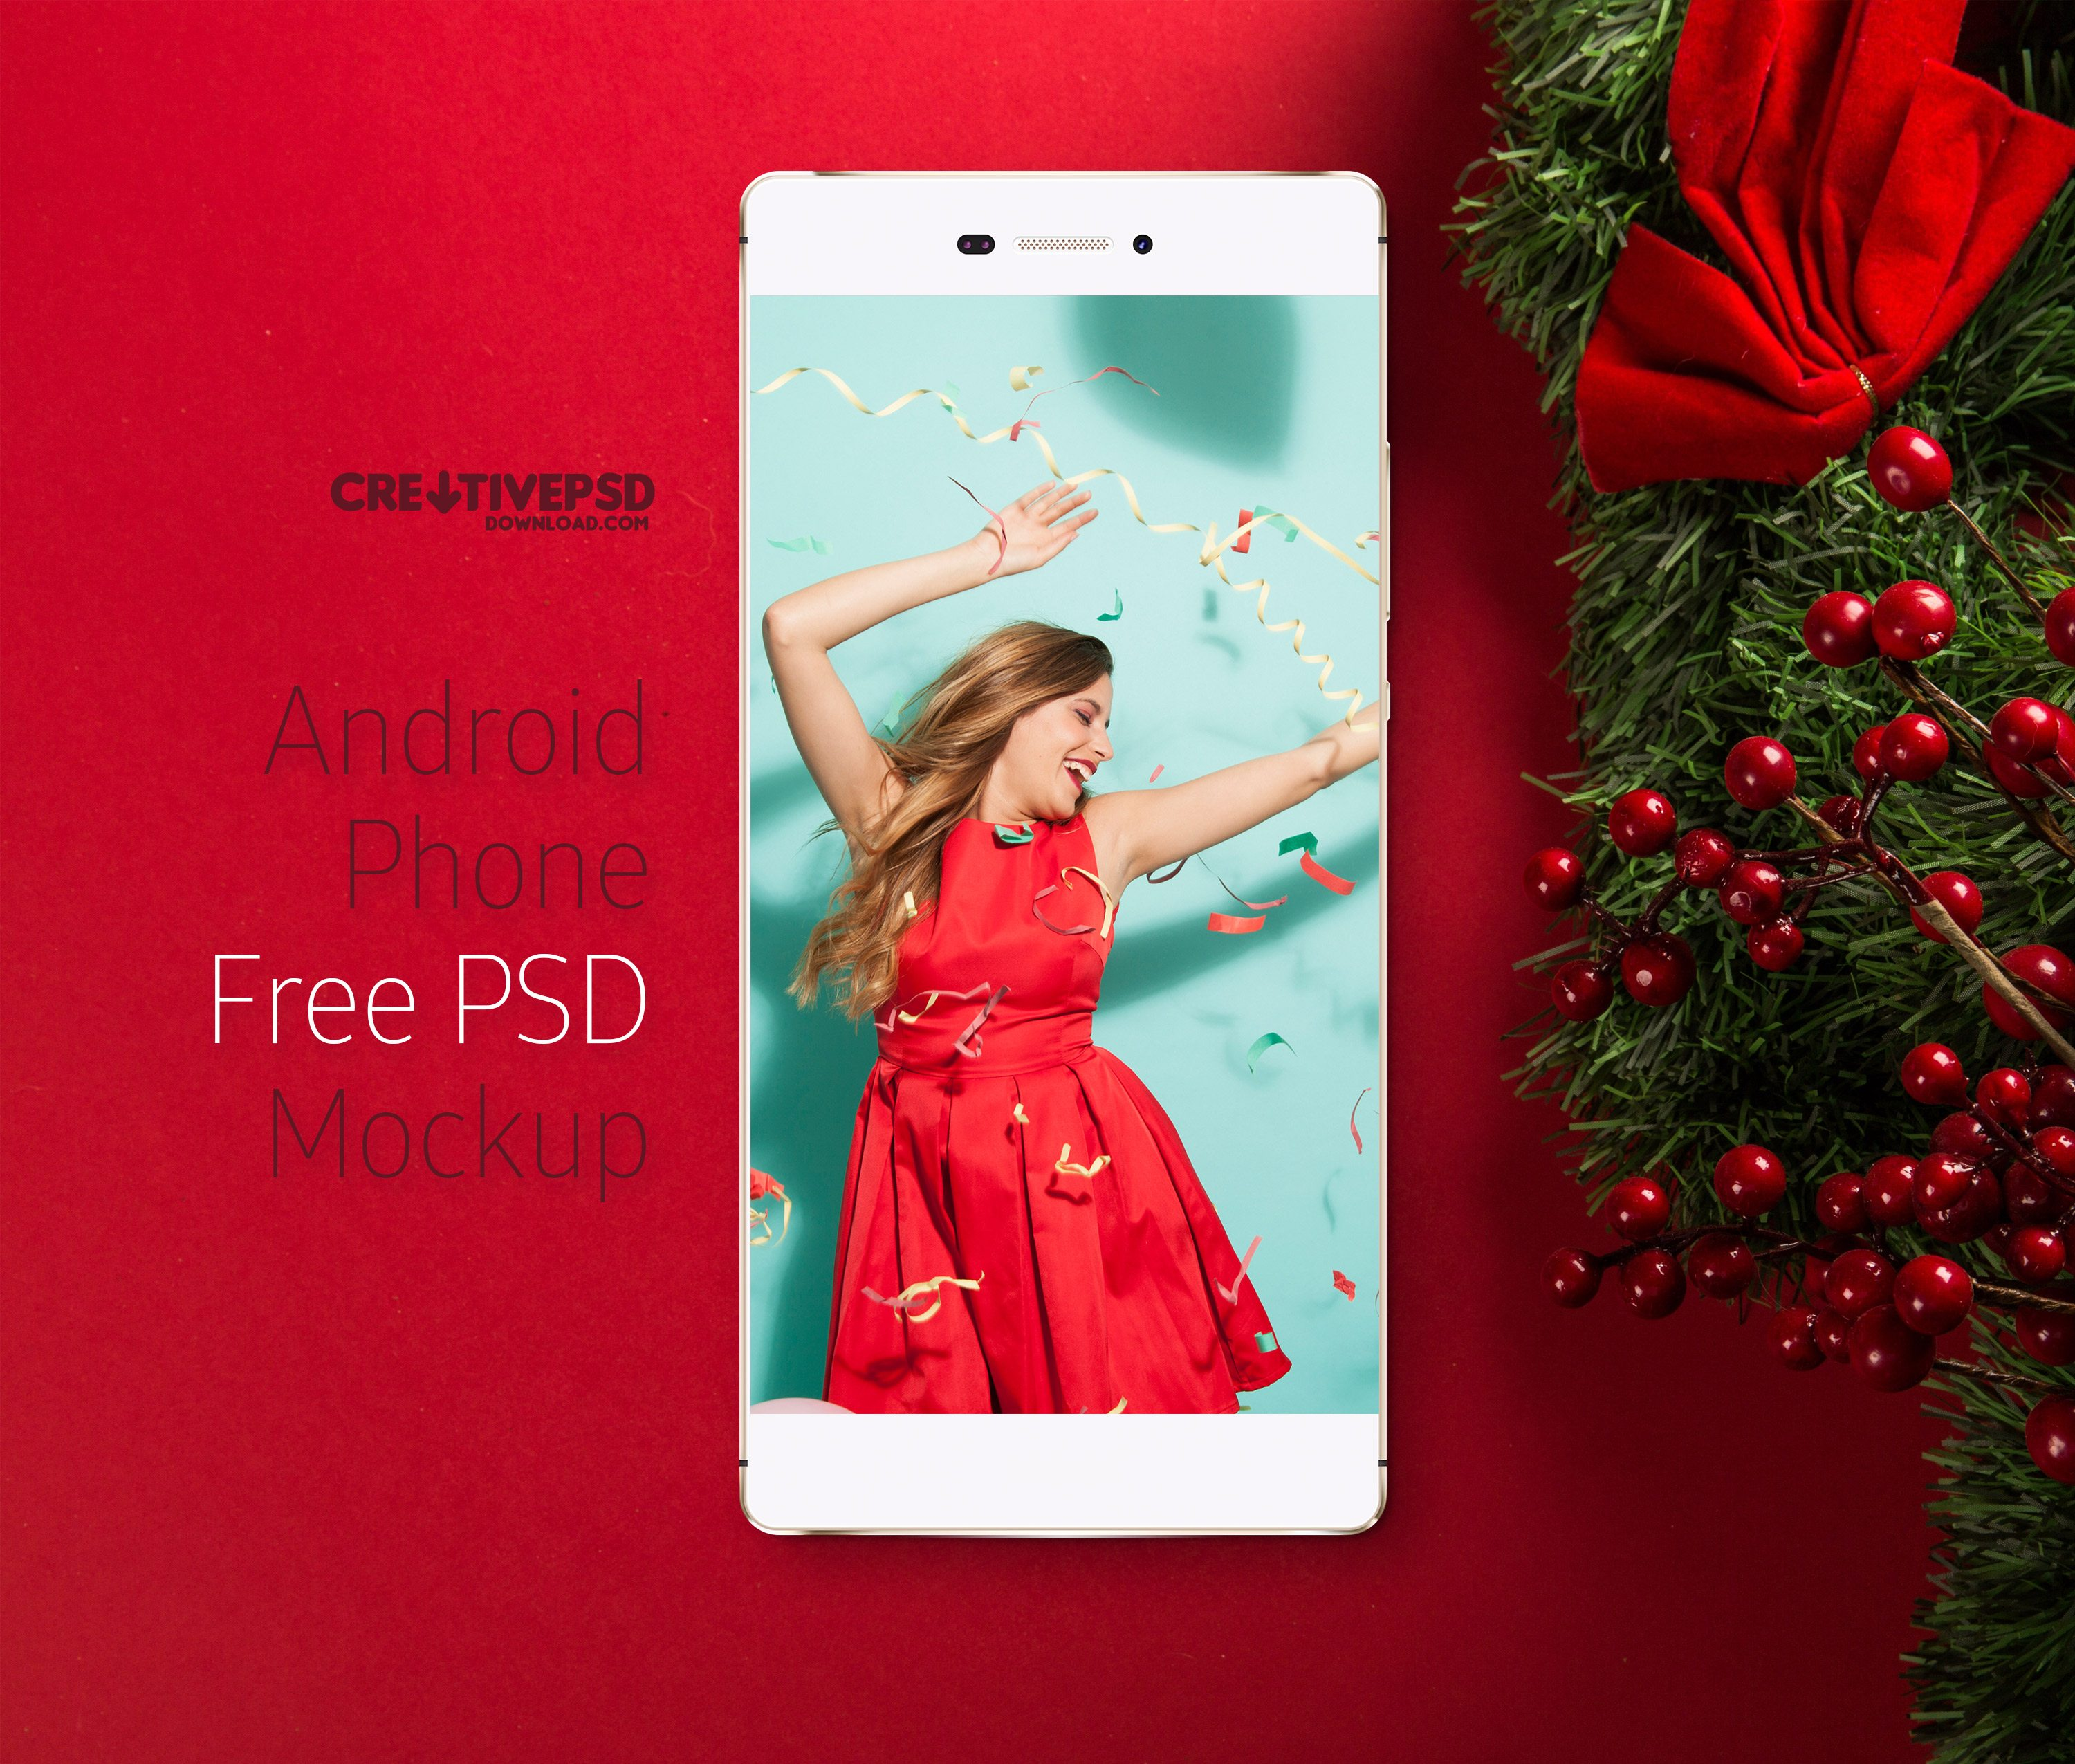 Android Phone Free PSD Mockup